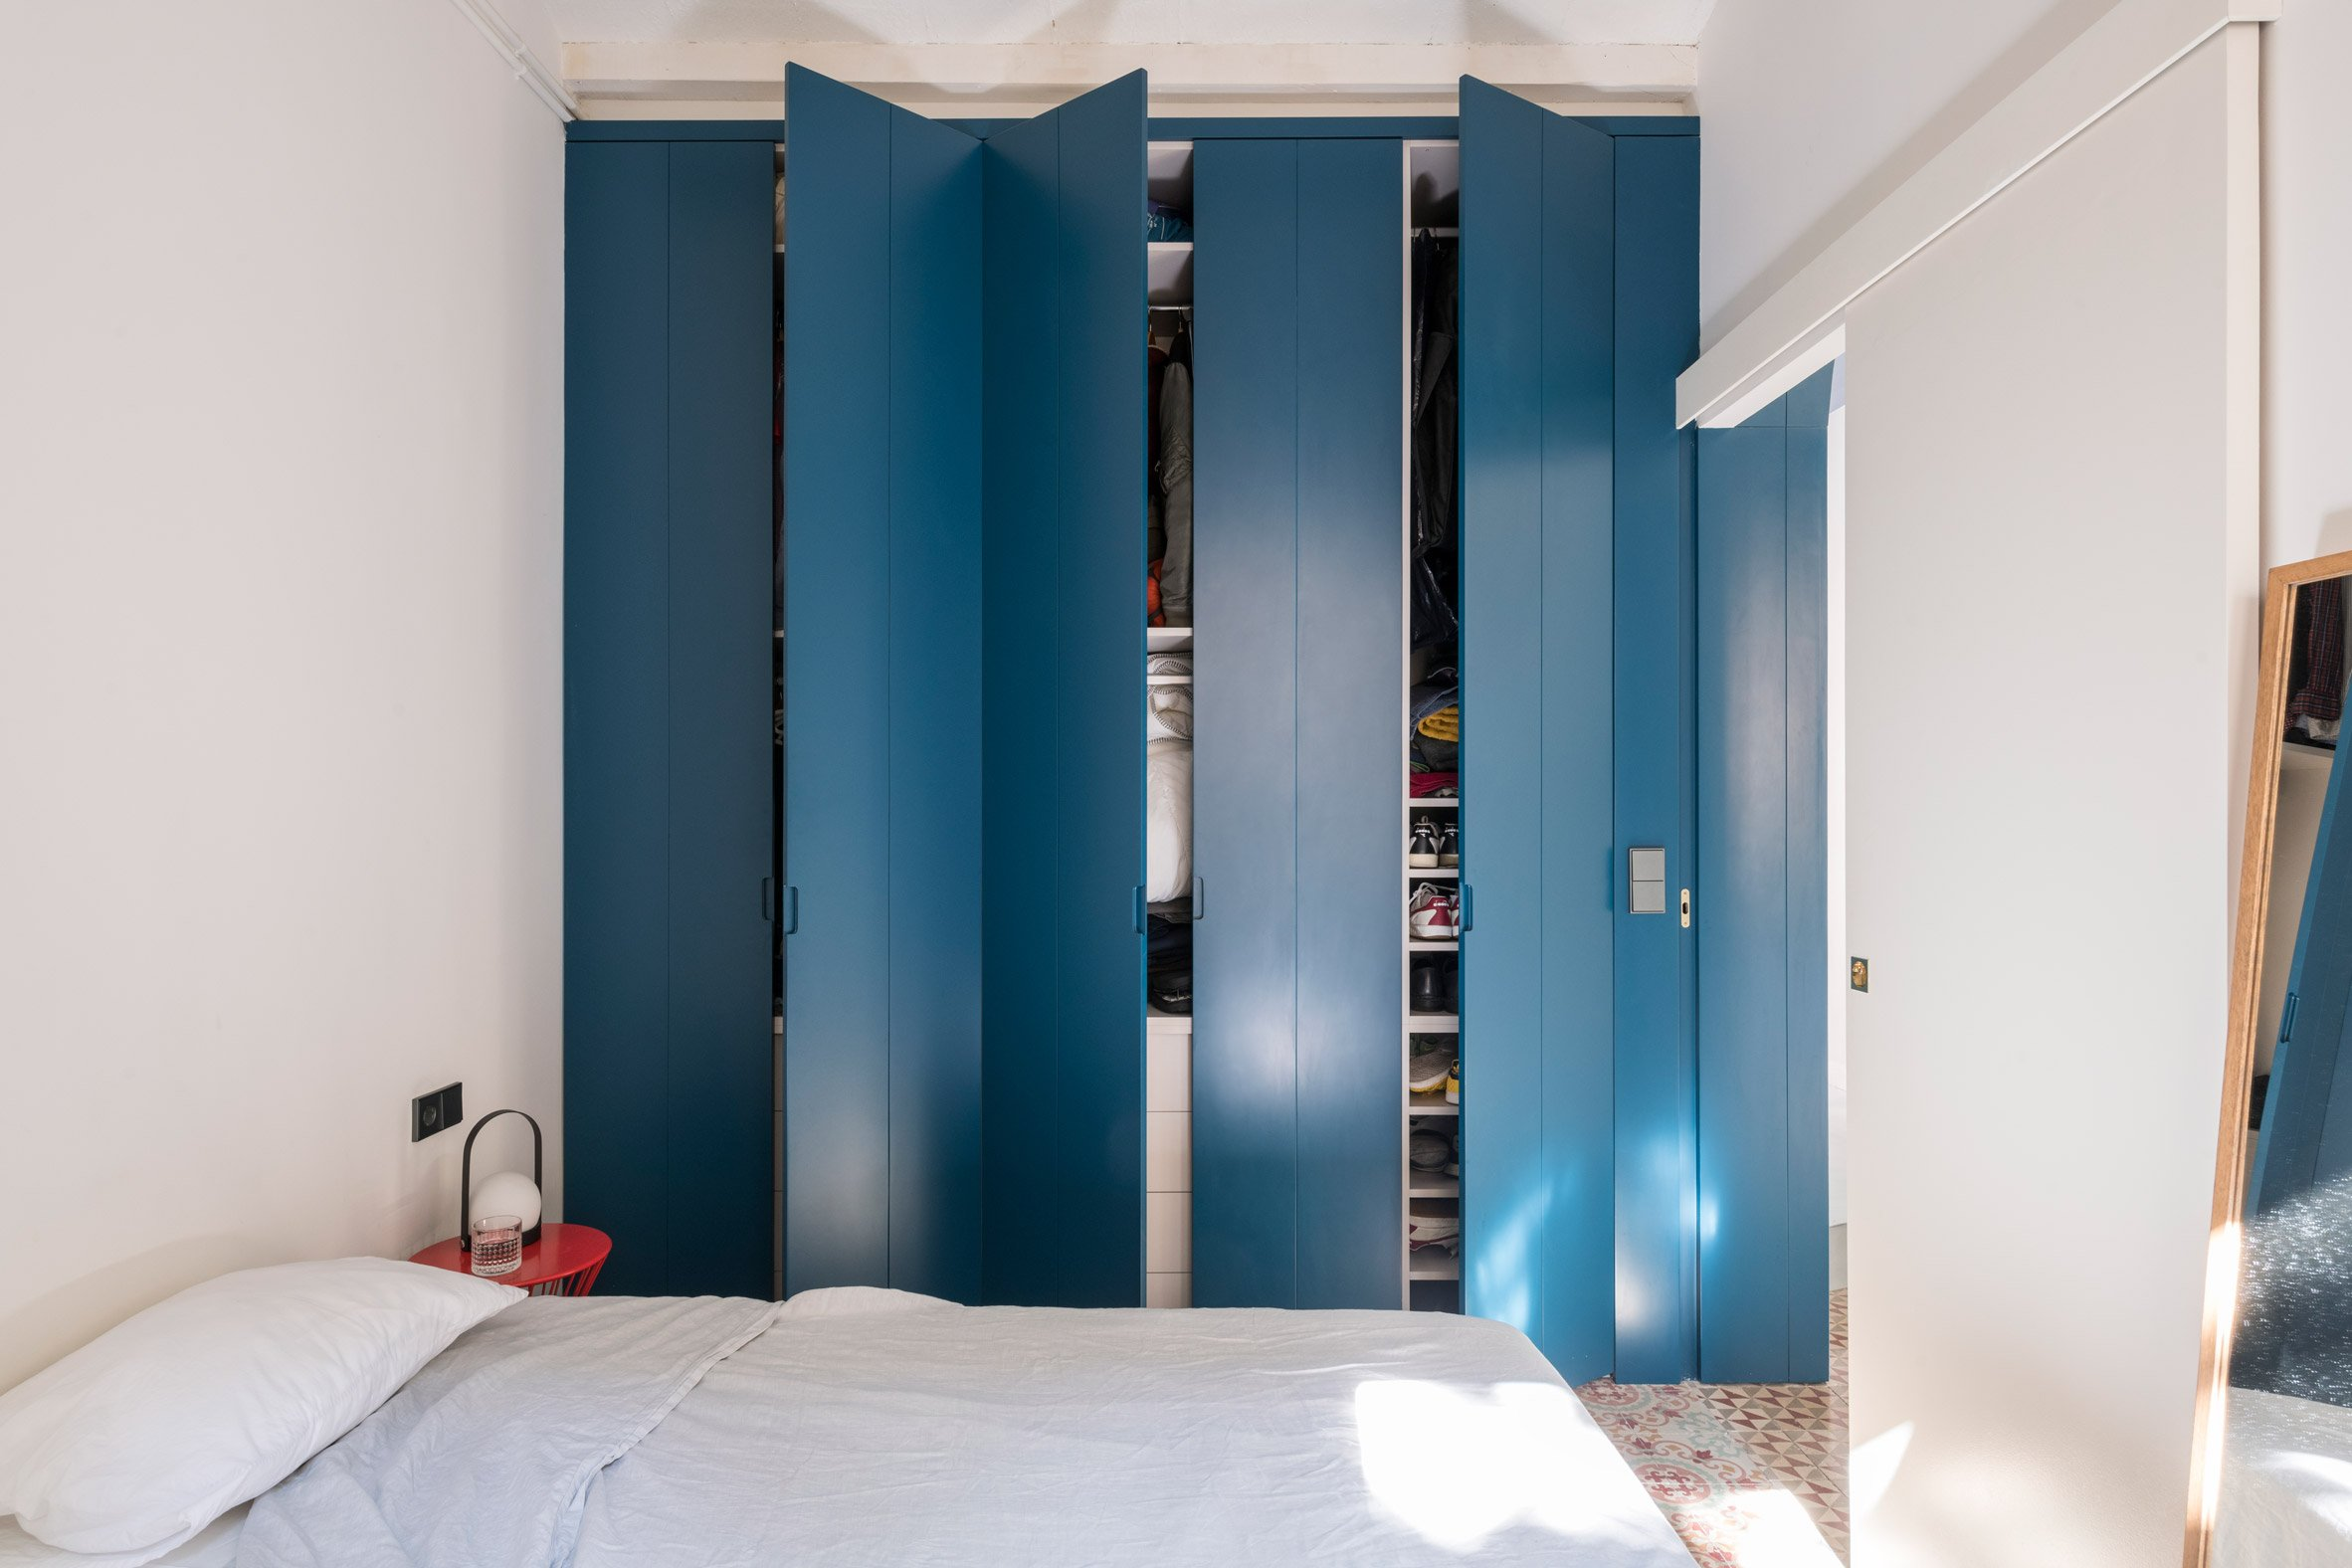 Font 6 apartment by Colombo and Serboli Architecture